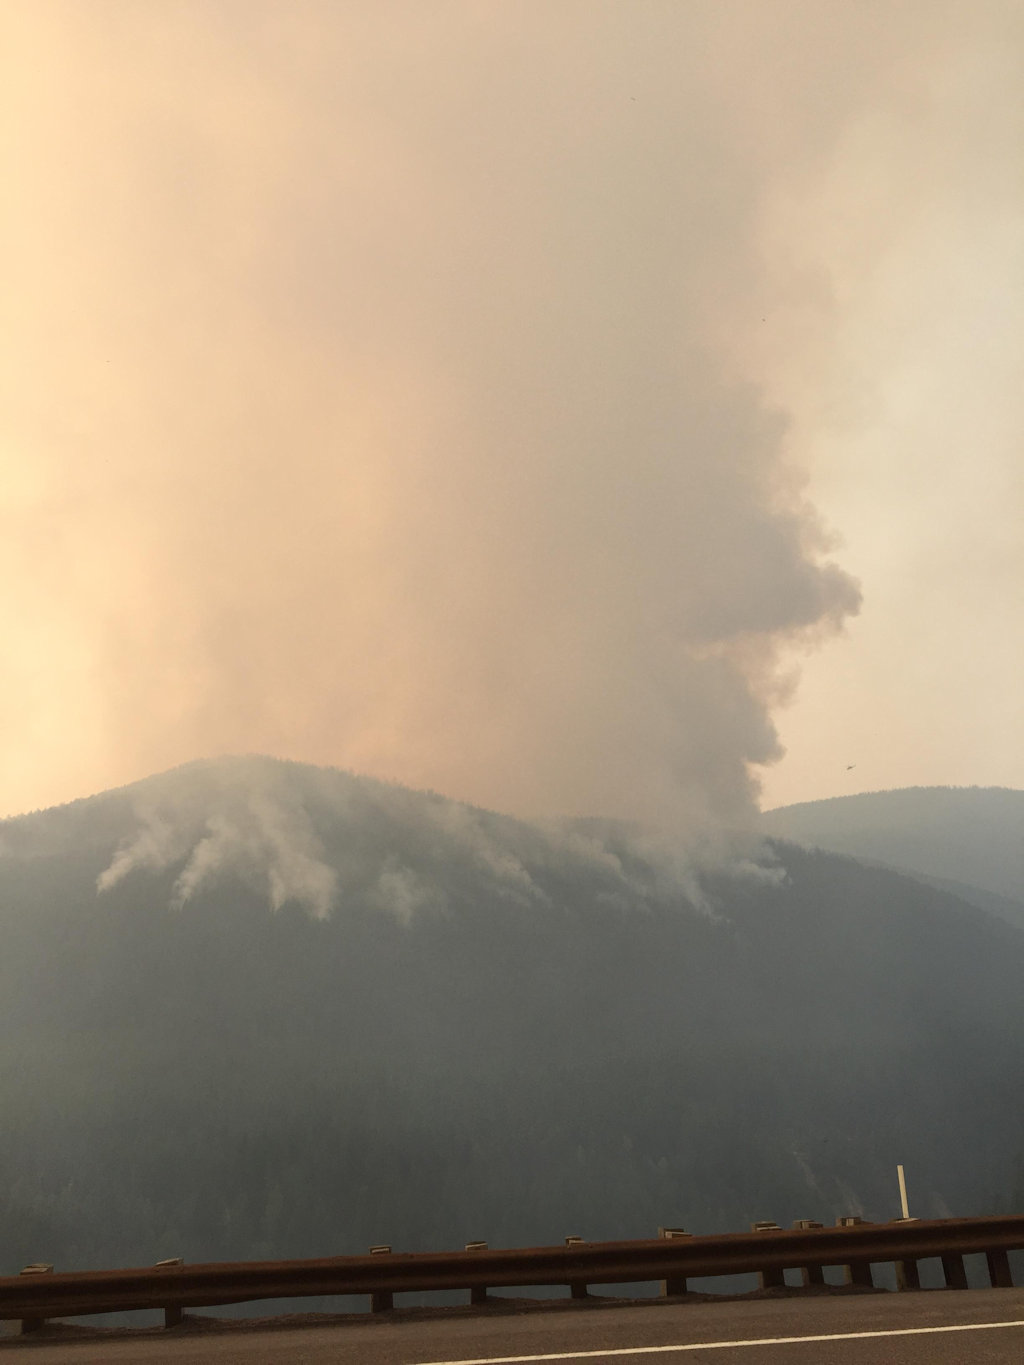 Sheep Fire burning late afternoon, Aug 27, 2015